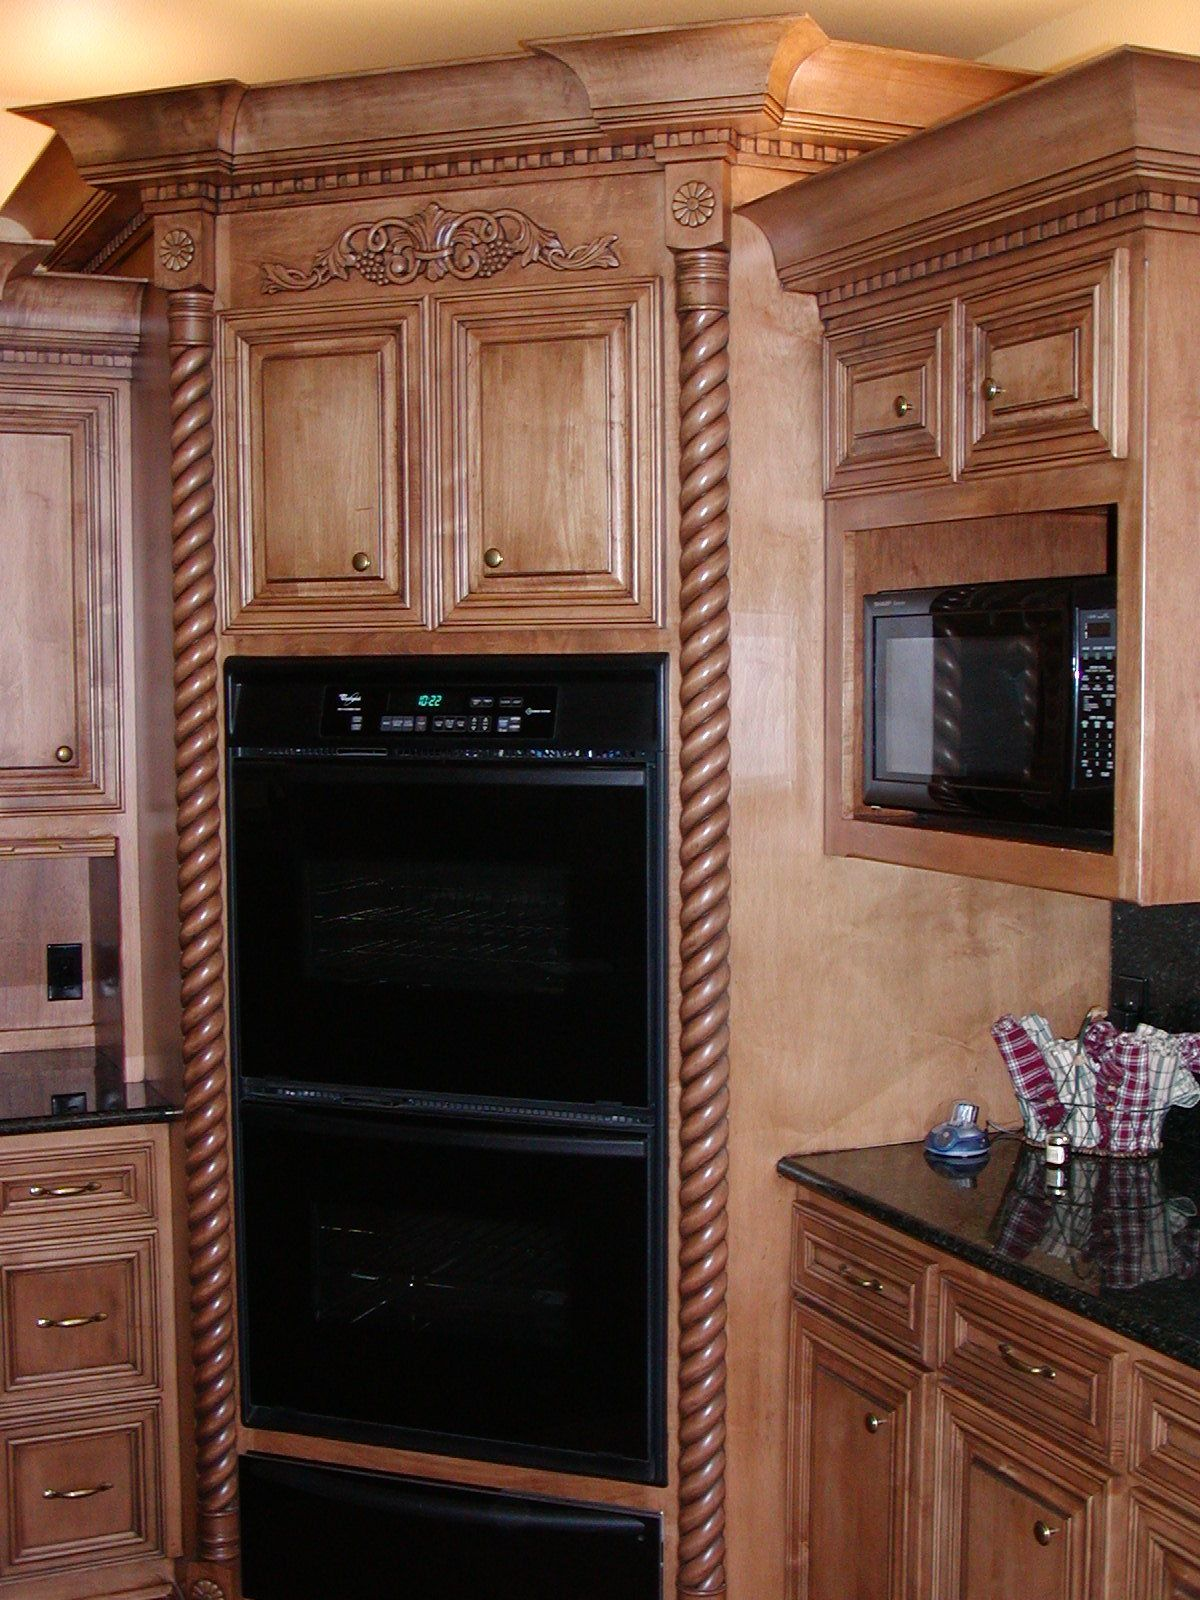 Custom Wall Oven Cabinets With Rope Trim By Texas Wood